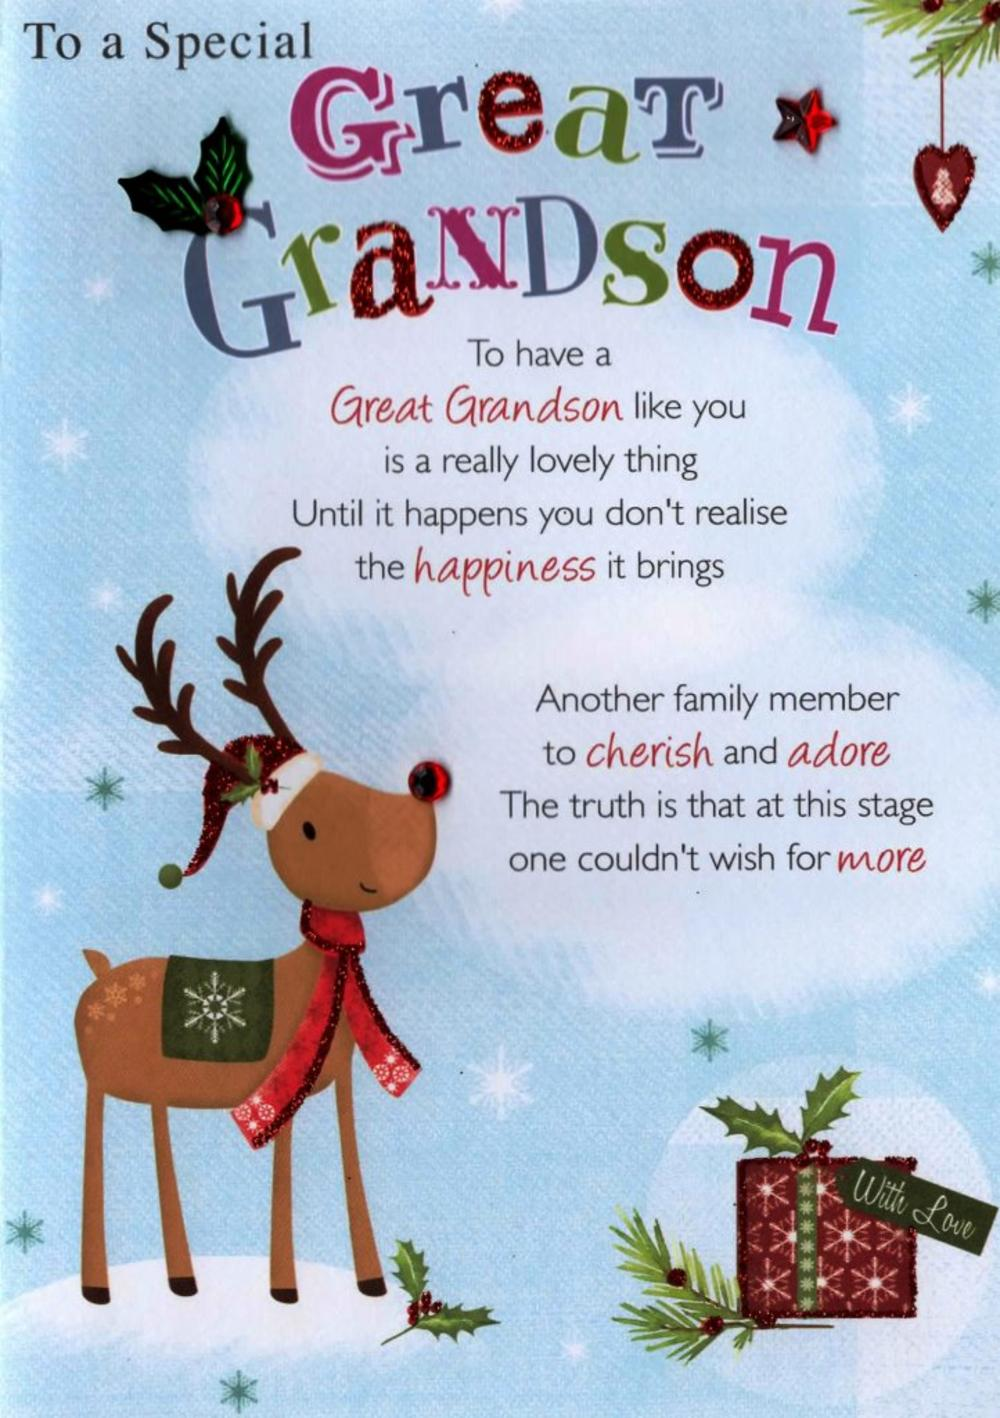 Special great grandson christmas greeting card cards love kates special great grandson christmas greeting card kristyandbryce Images